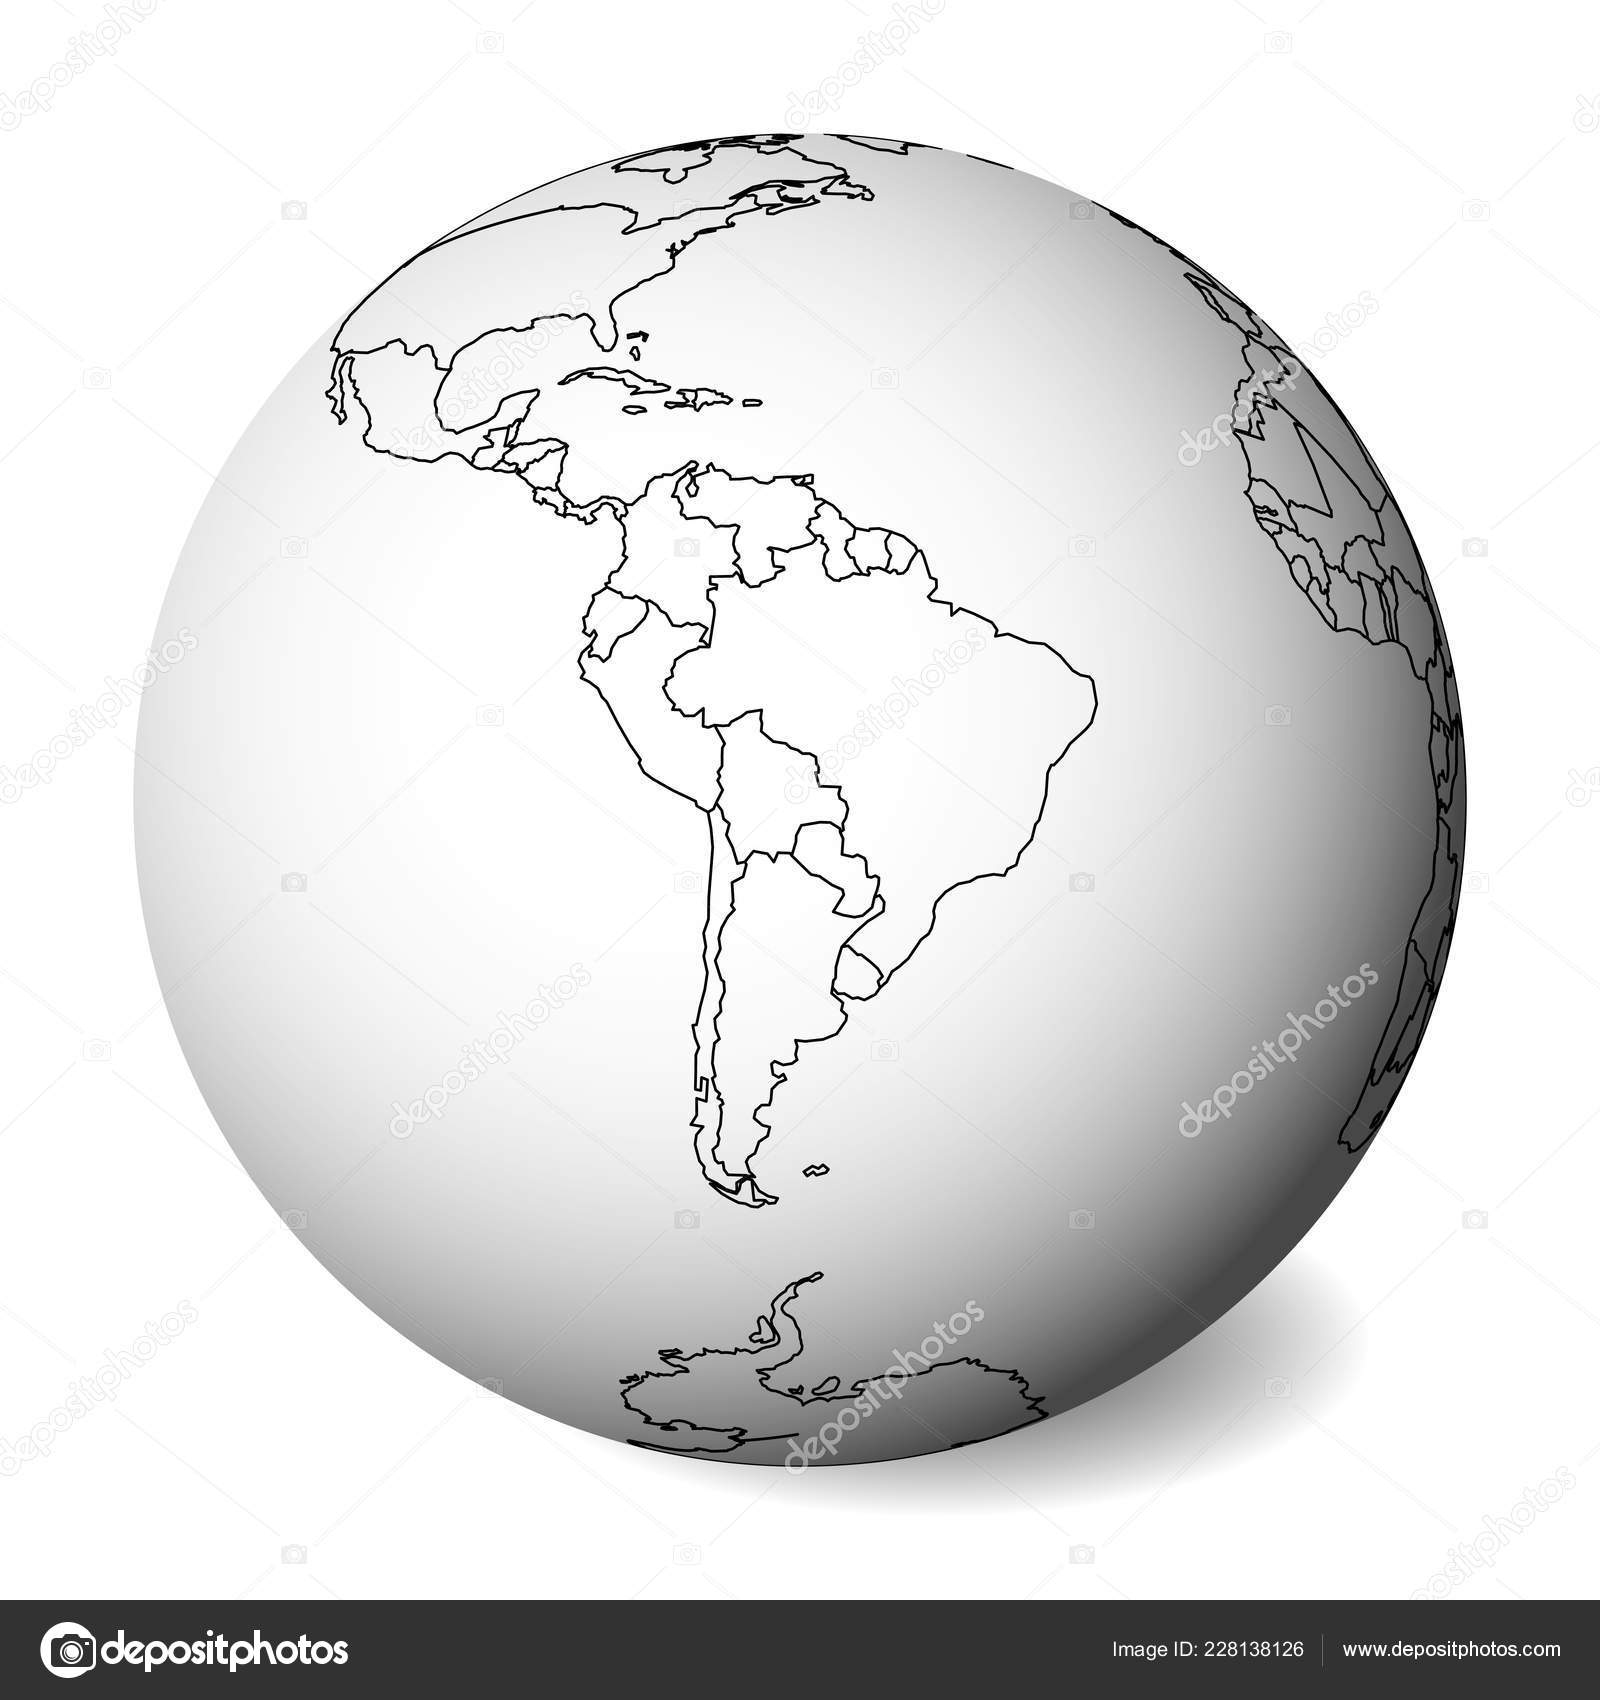 Blank political map of South America. 3D Earth globe with black ...